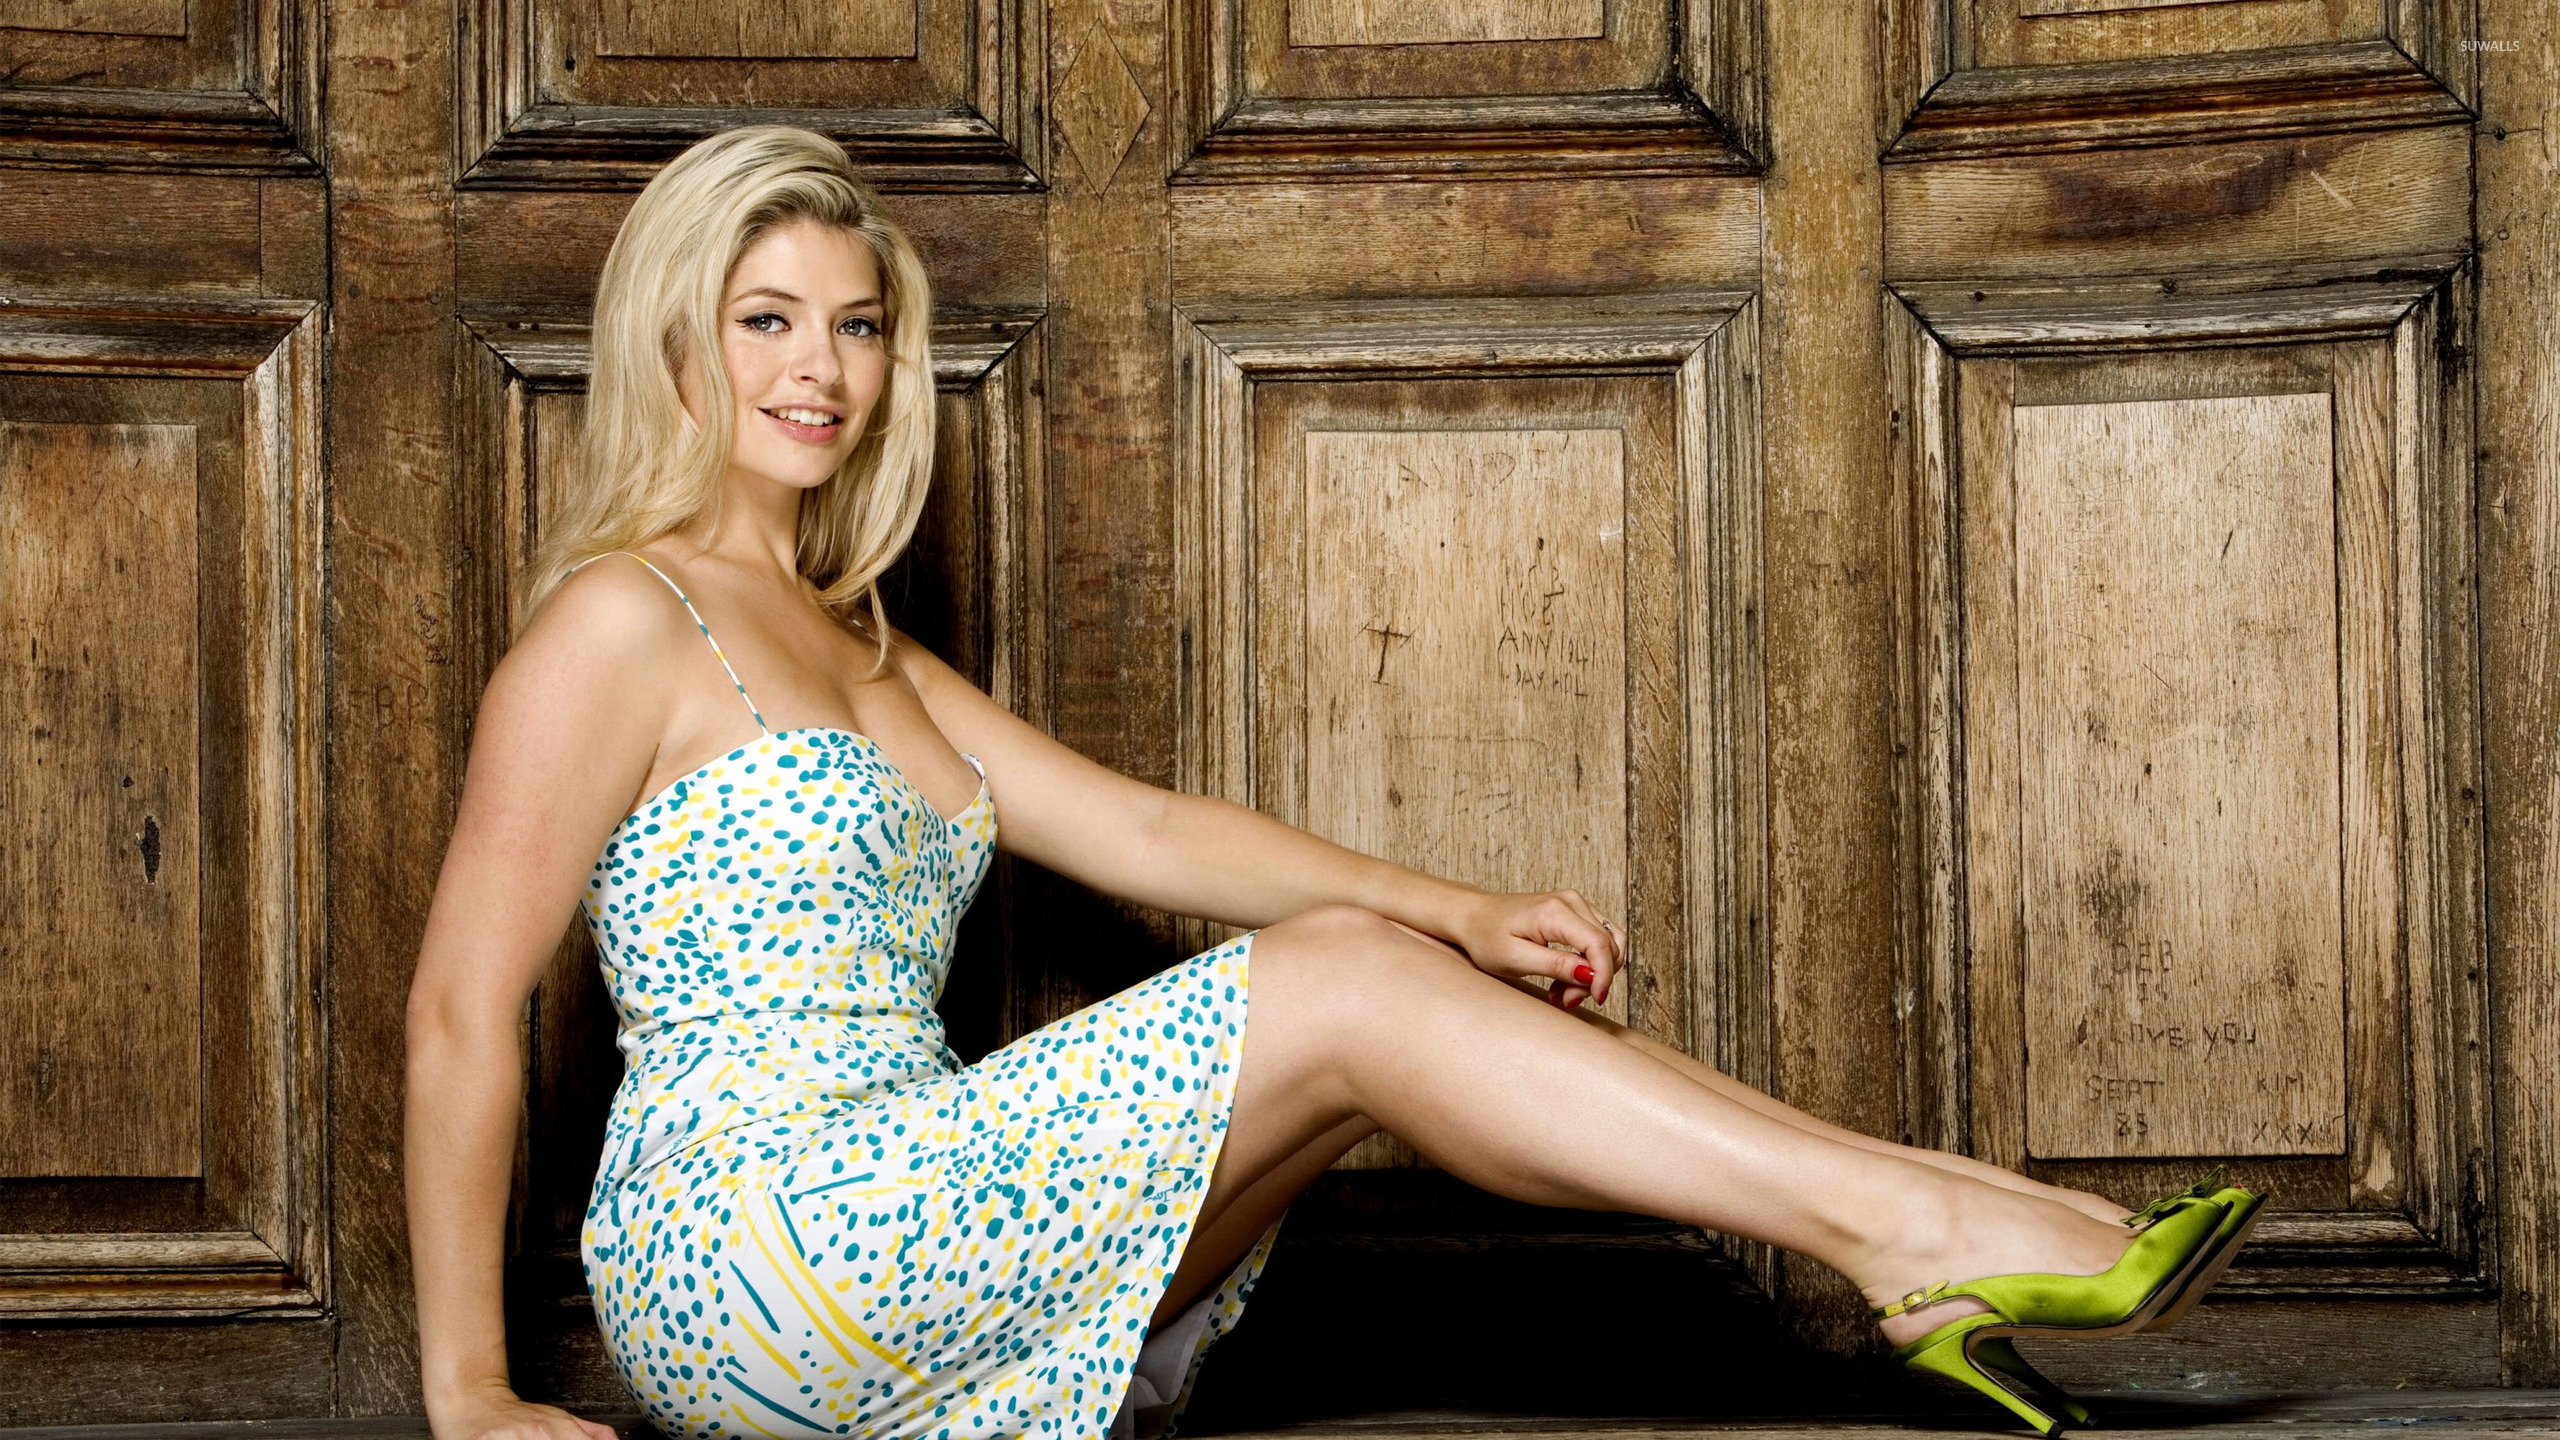 holly willoughby - photo #16